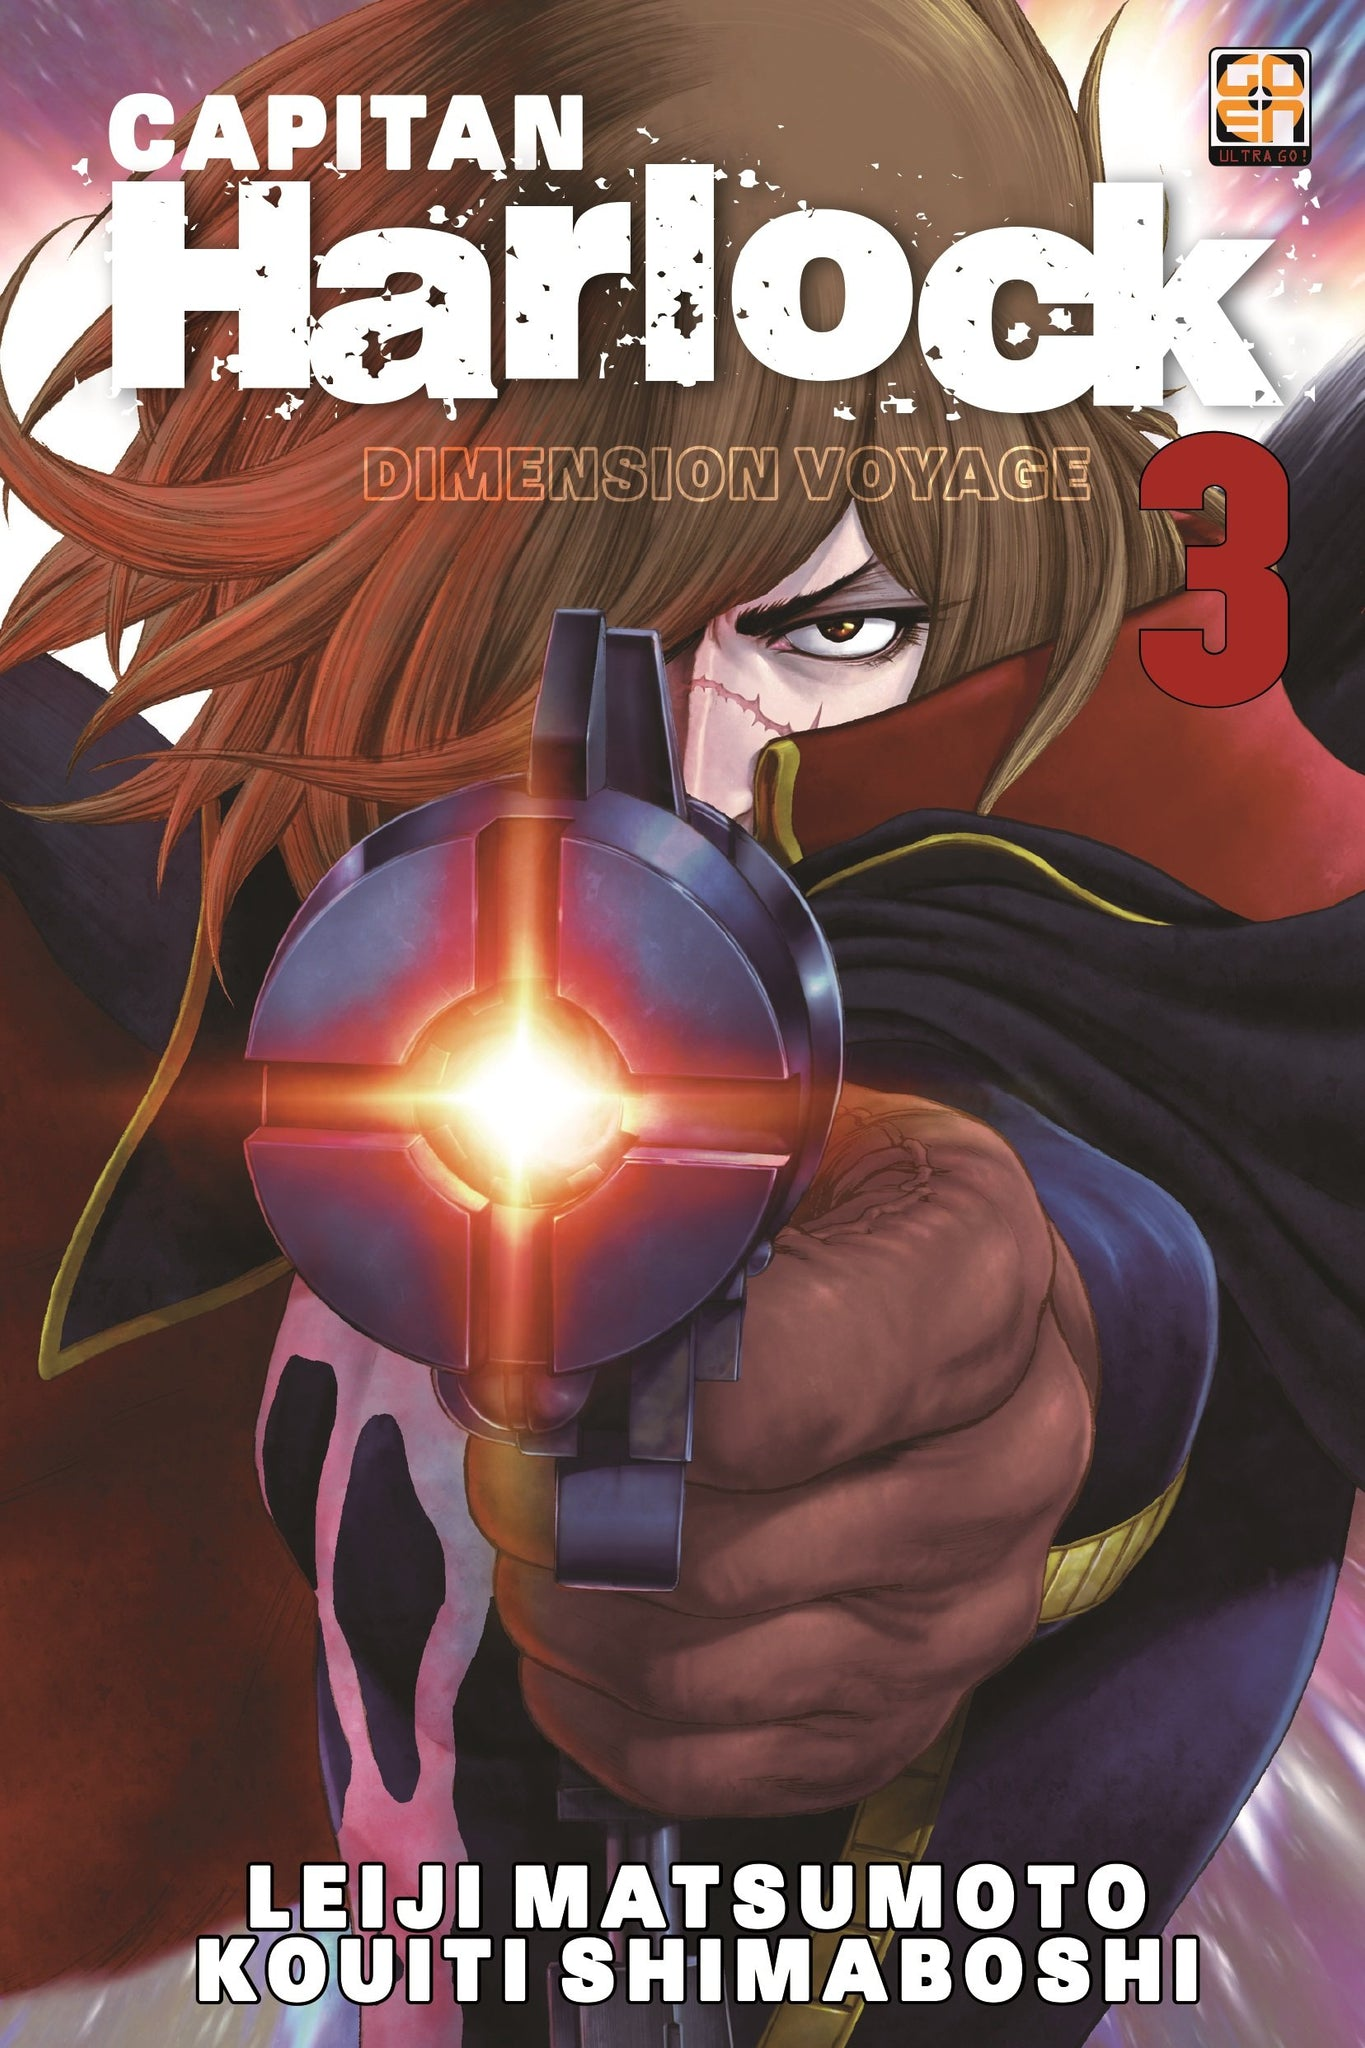 CULT COLLECTION (201500) 28 CAPITAN HARLOCK DIMENSION VOYAGE 3